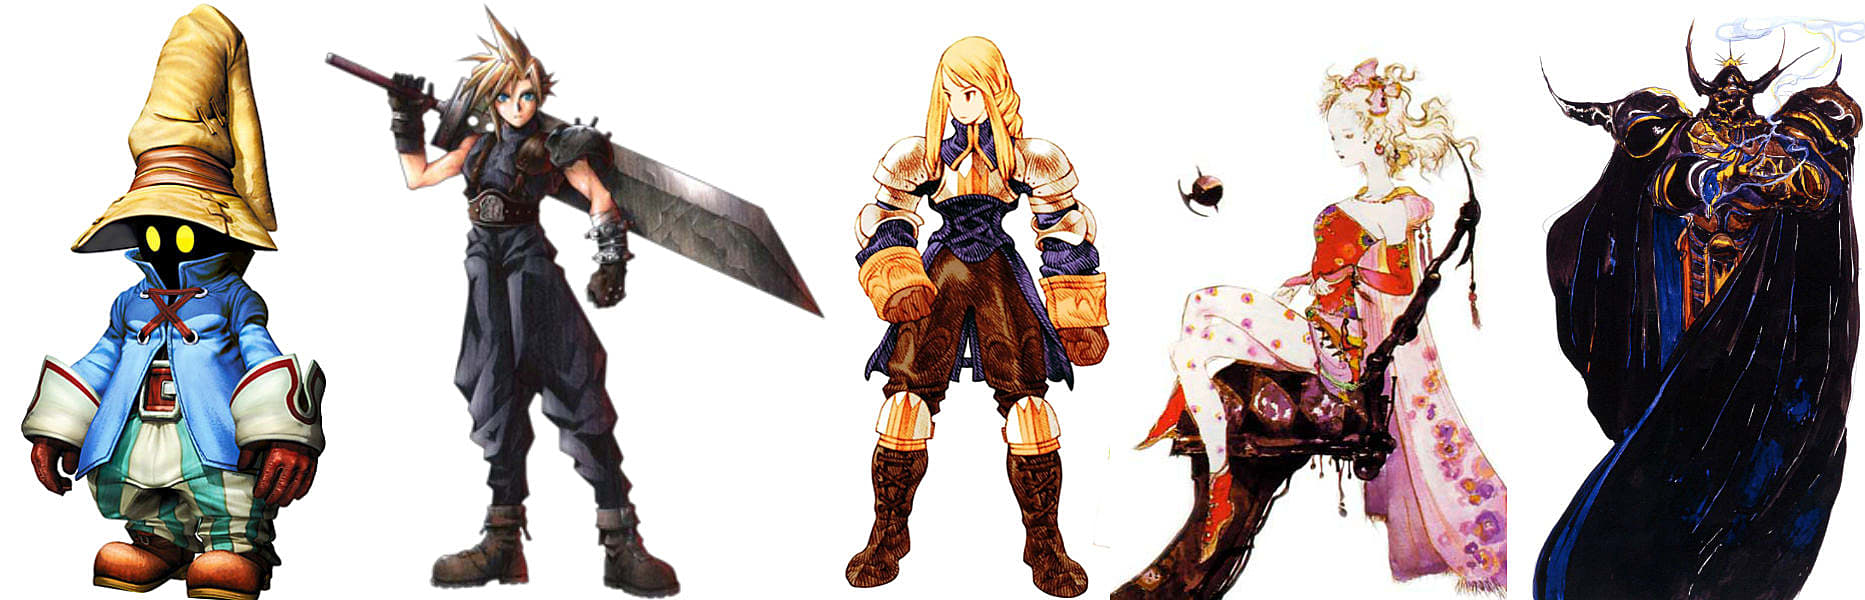 A Look At The Final Fantasy Series From Best To Worst